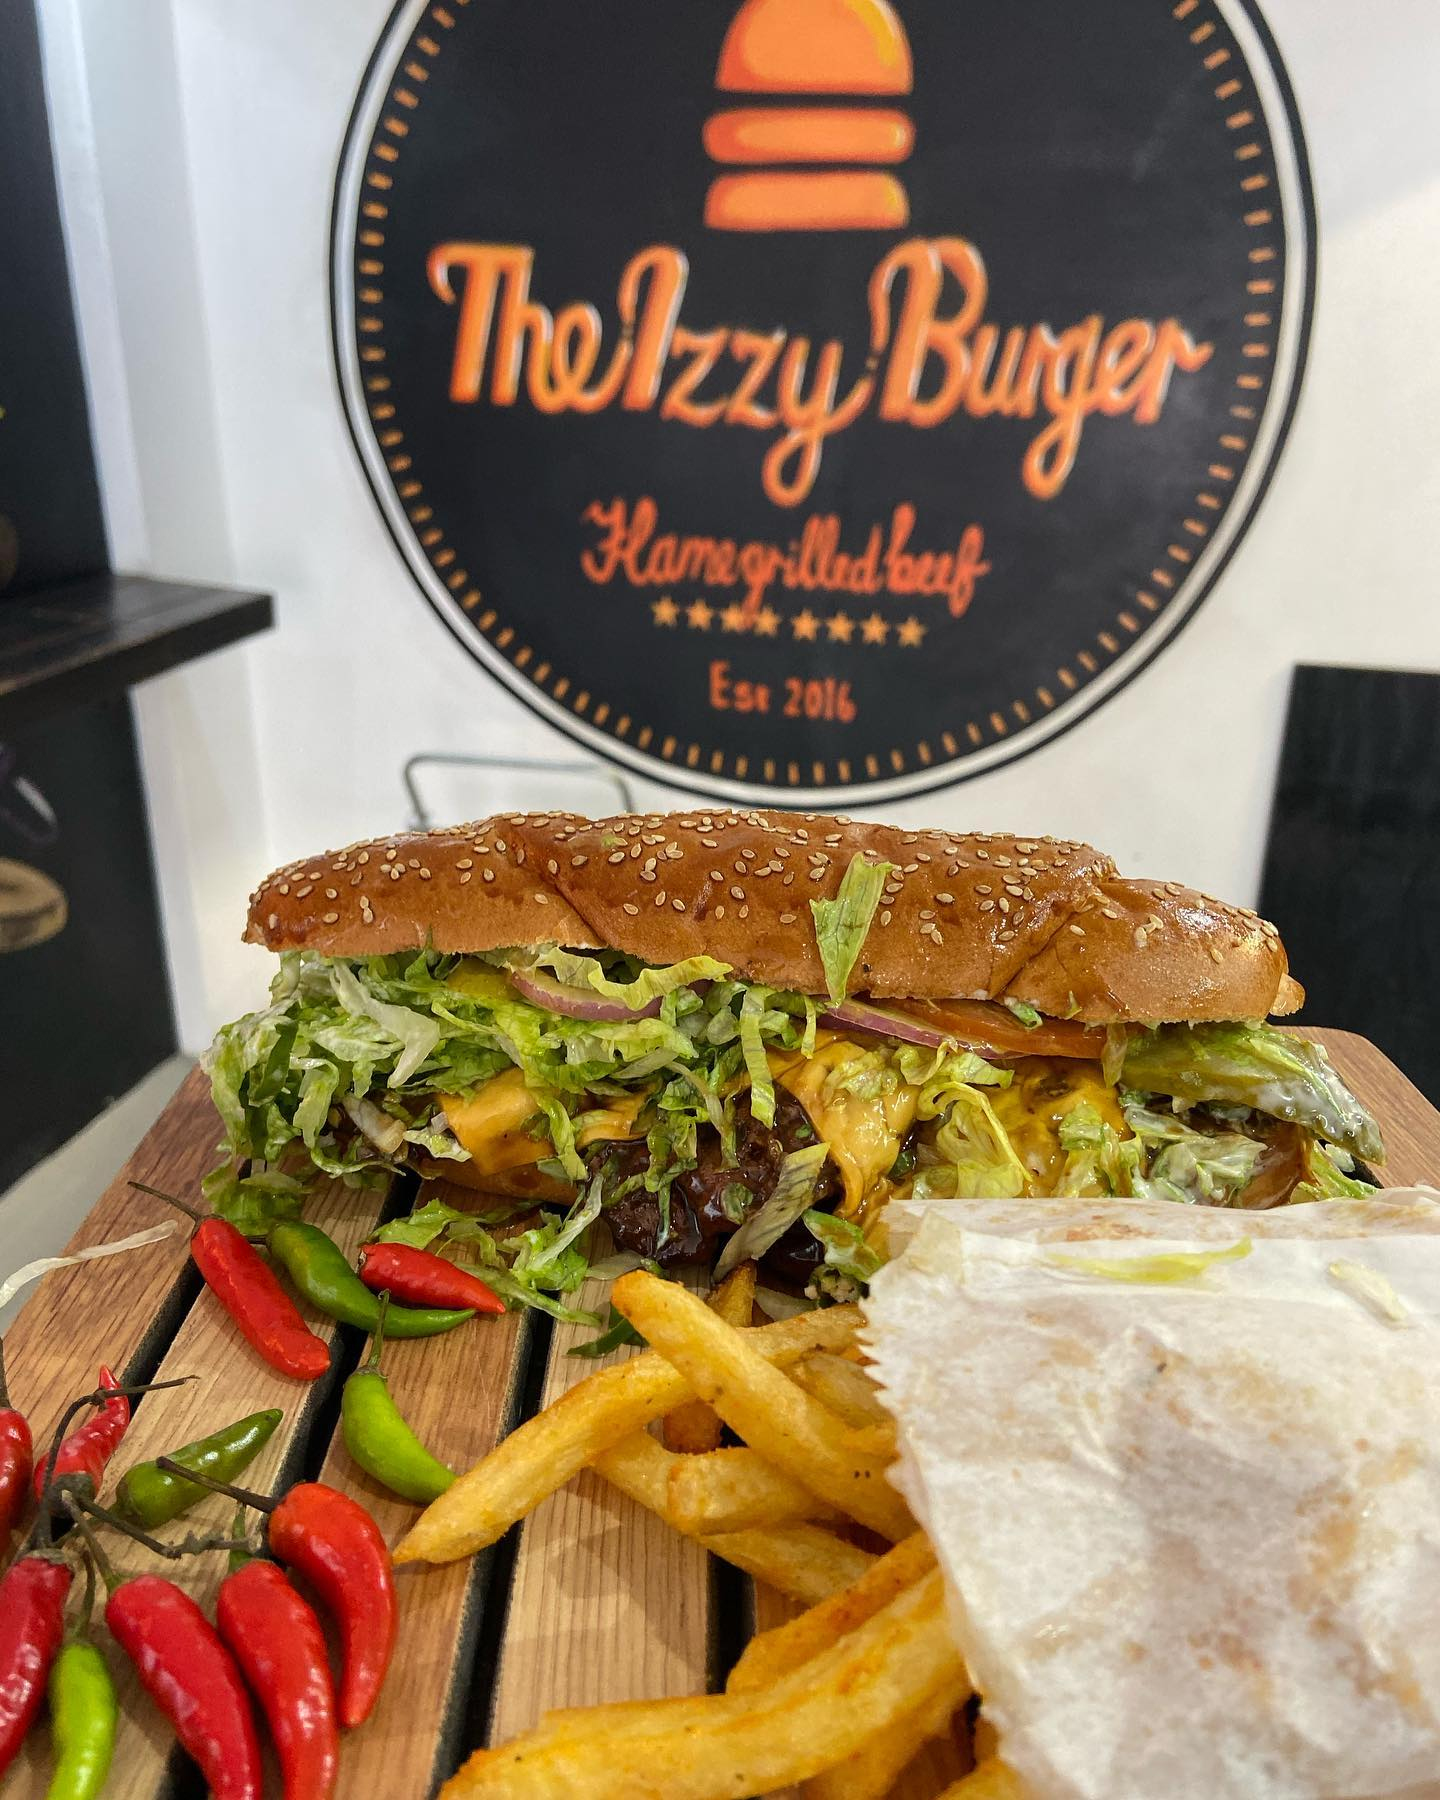 Finally had @theizzyburger in Wynberg,Cape Town. We had the Izzy Long and a Single Izzy. The fries are ️. The sauce and pattie are ️. The Izzy Long is 3 100g patties in a long roll with cheese,chilli and garnish. Great Shout #halaal